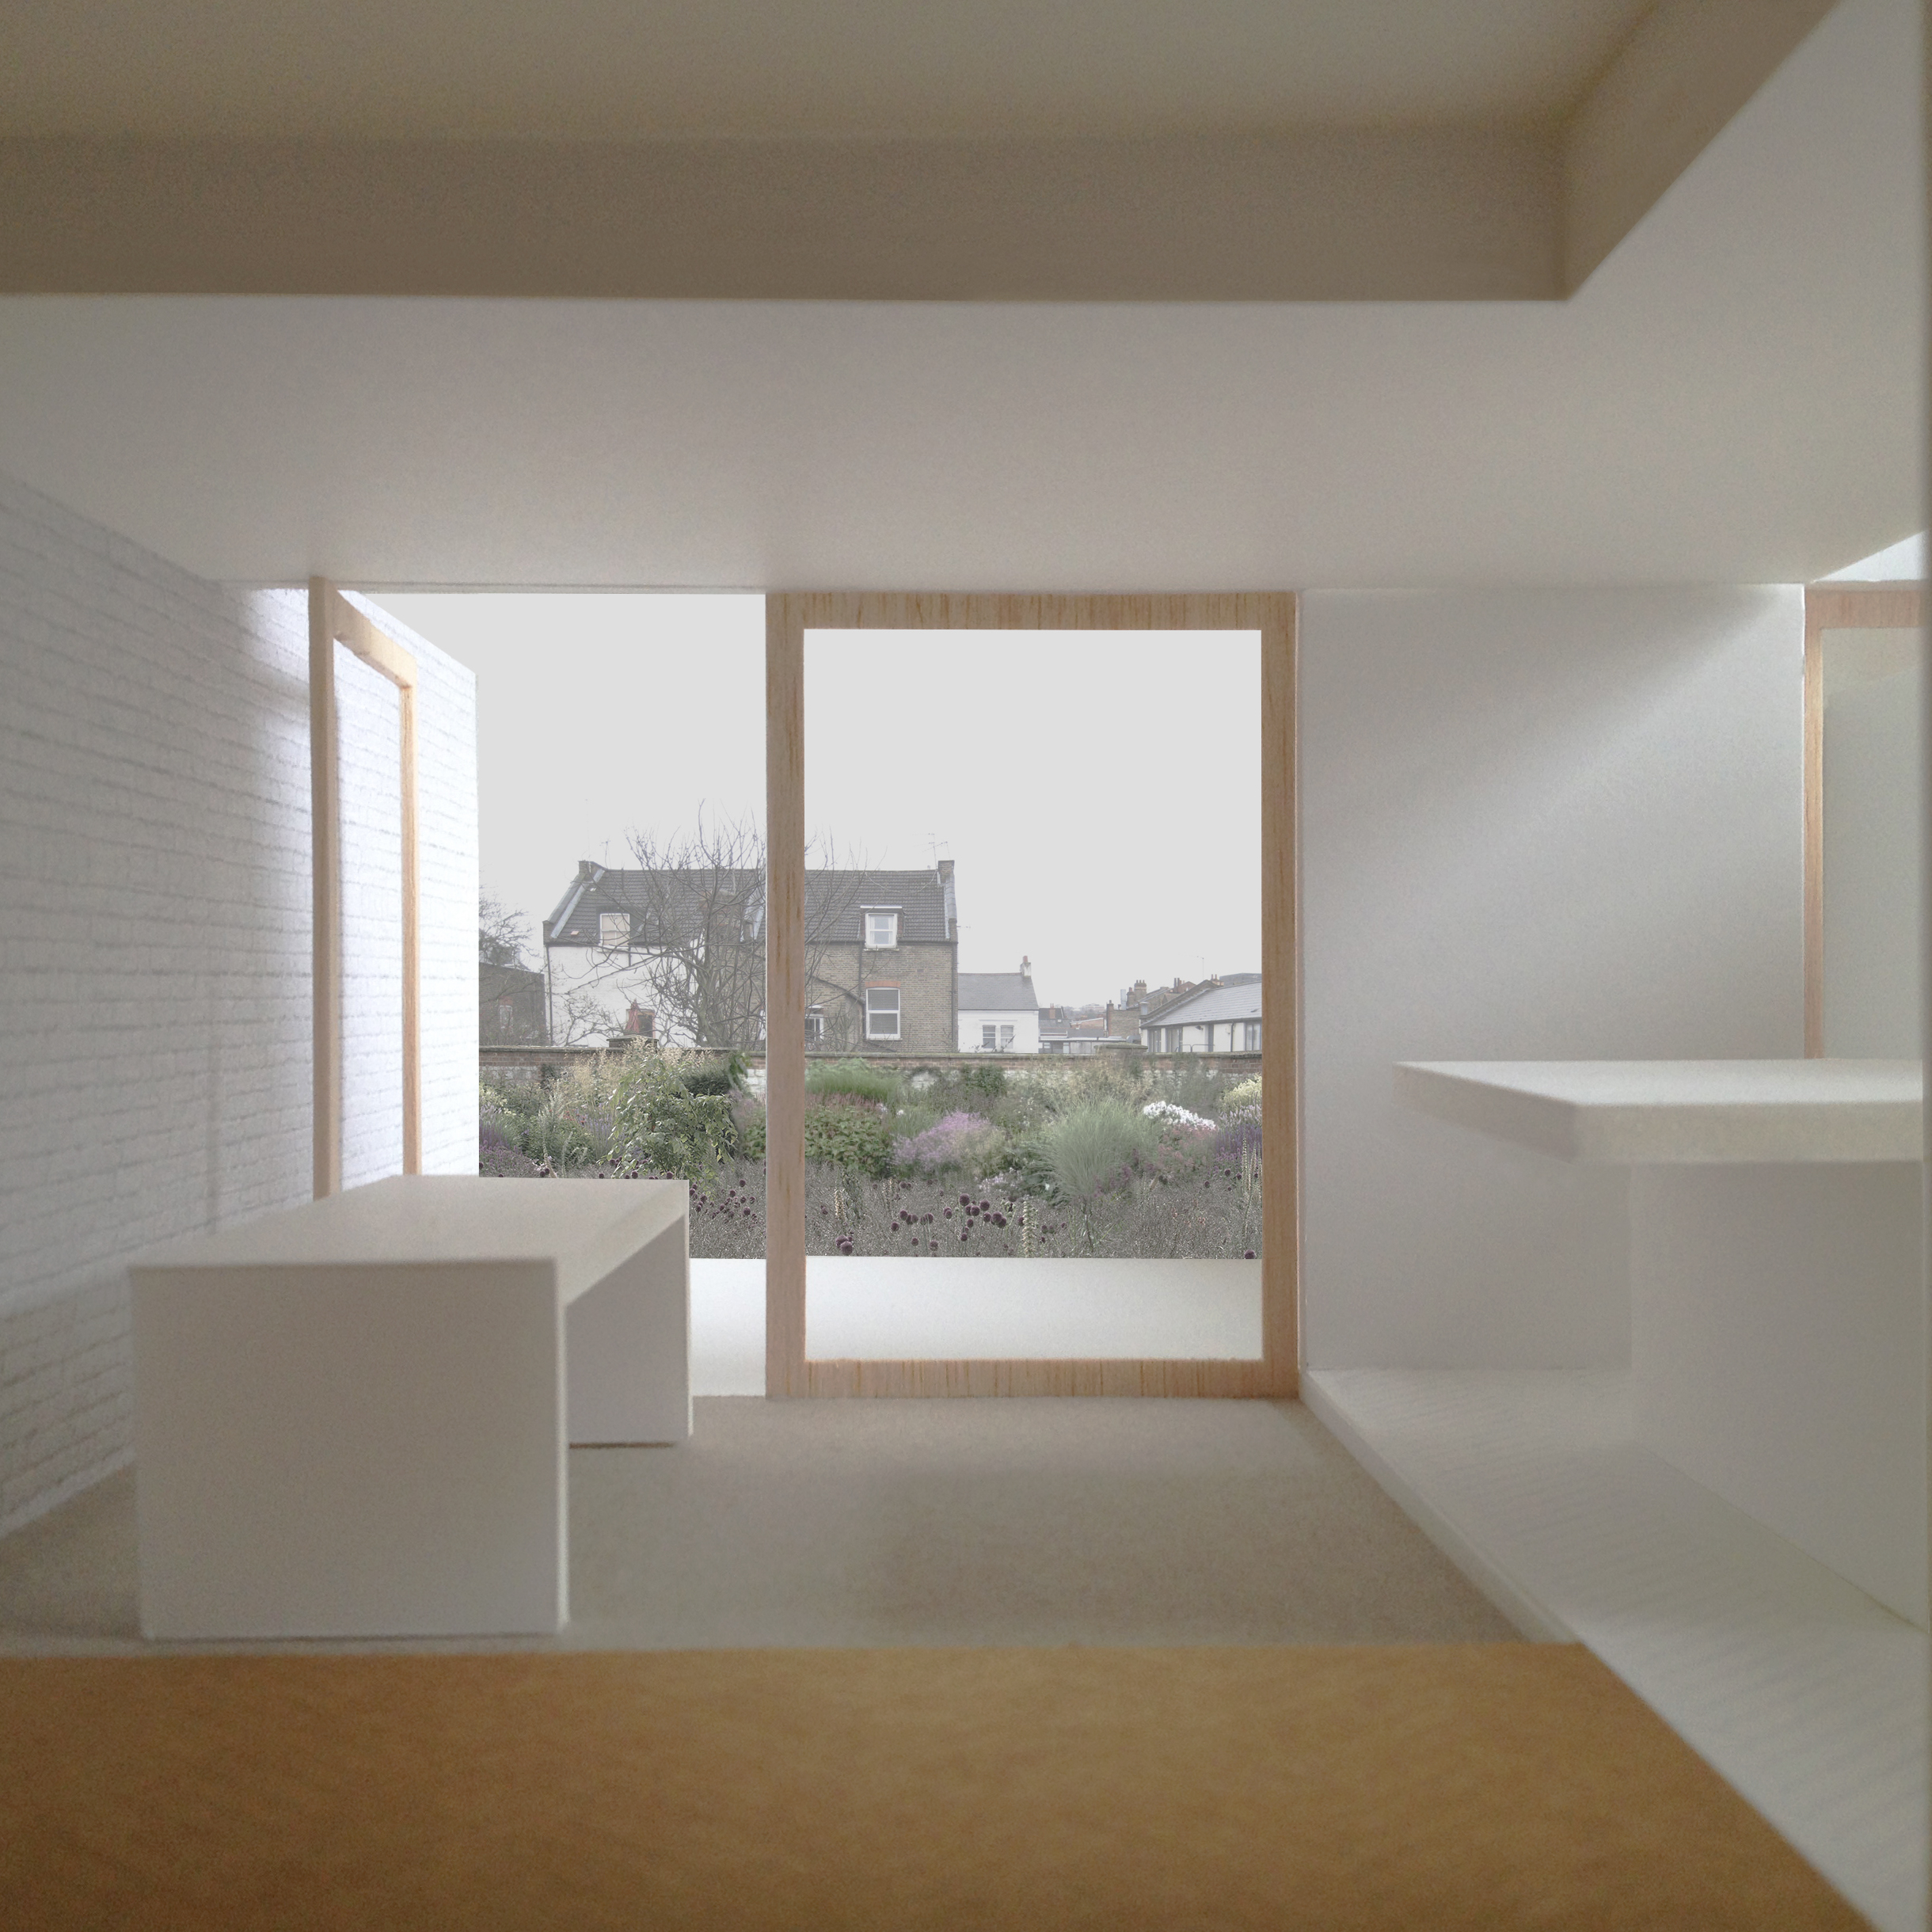 MOCT_Nelson Rd_house extension_model_collage_Image01 sqaure.jpg